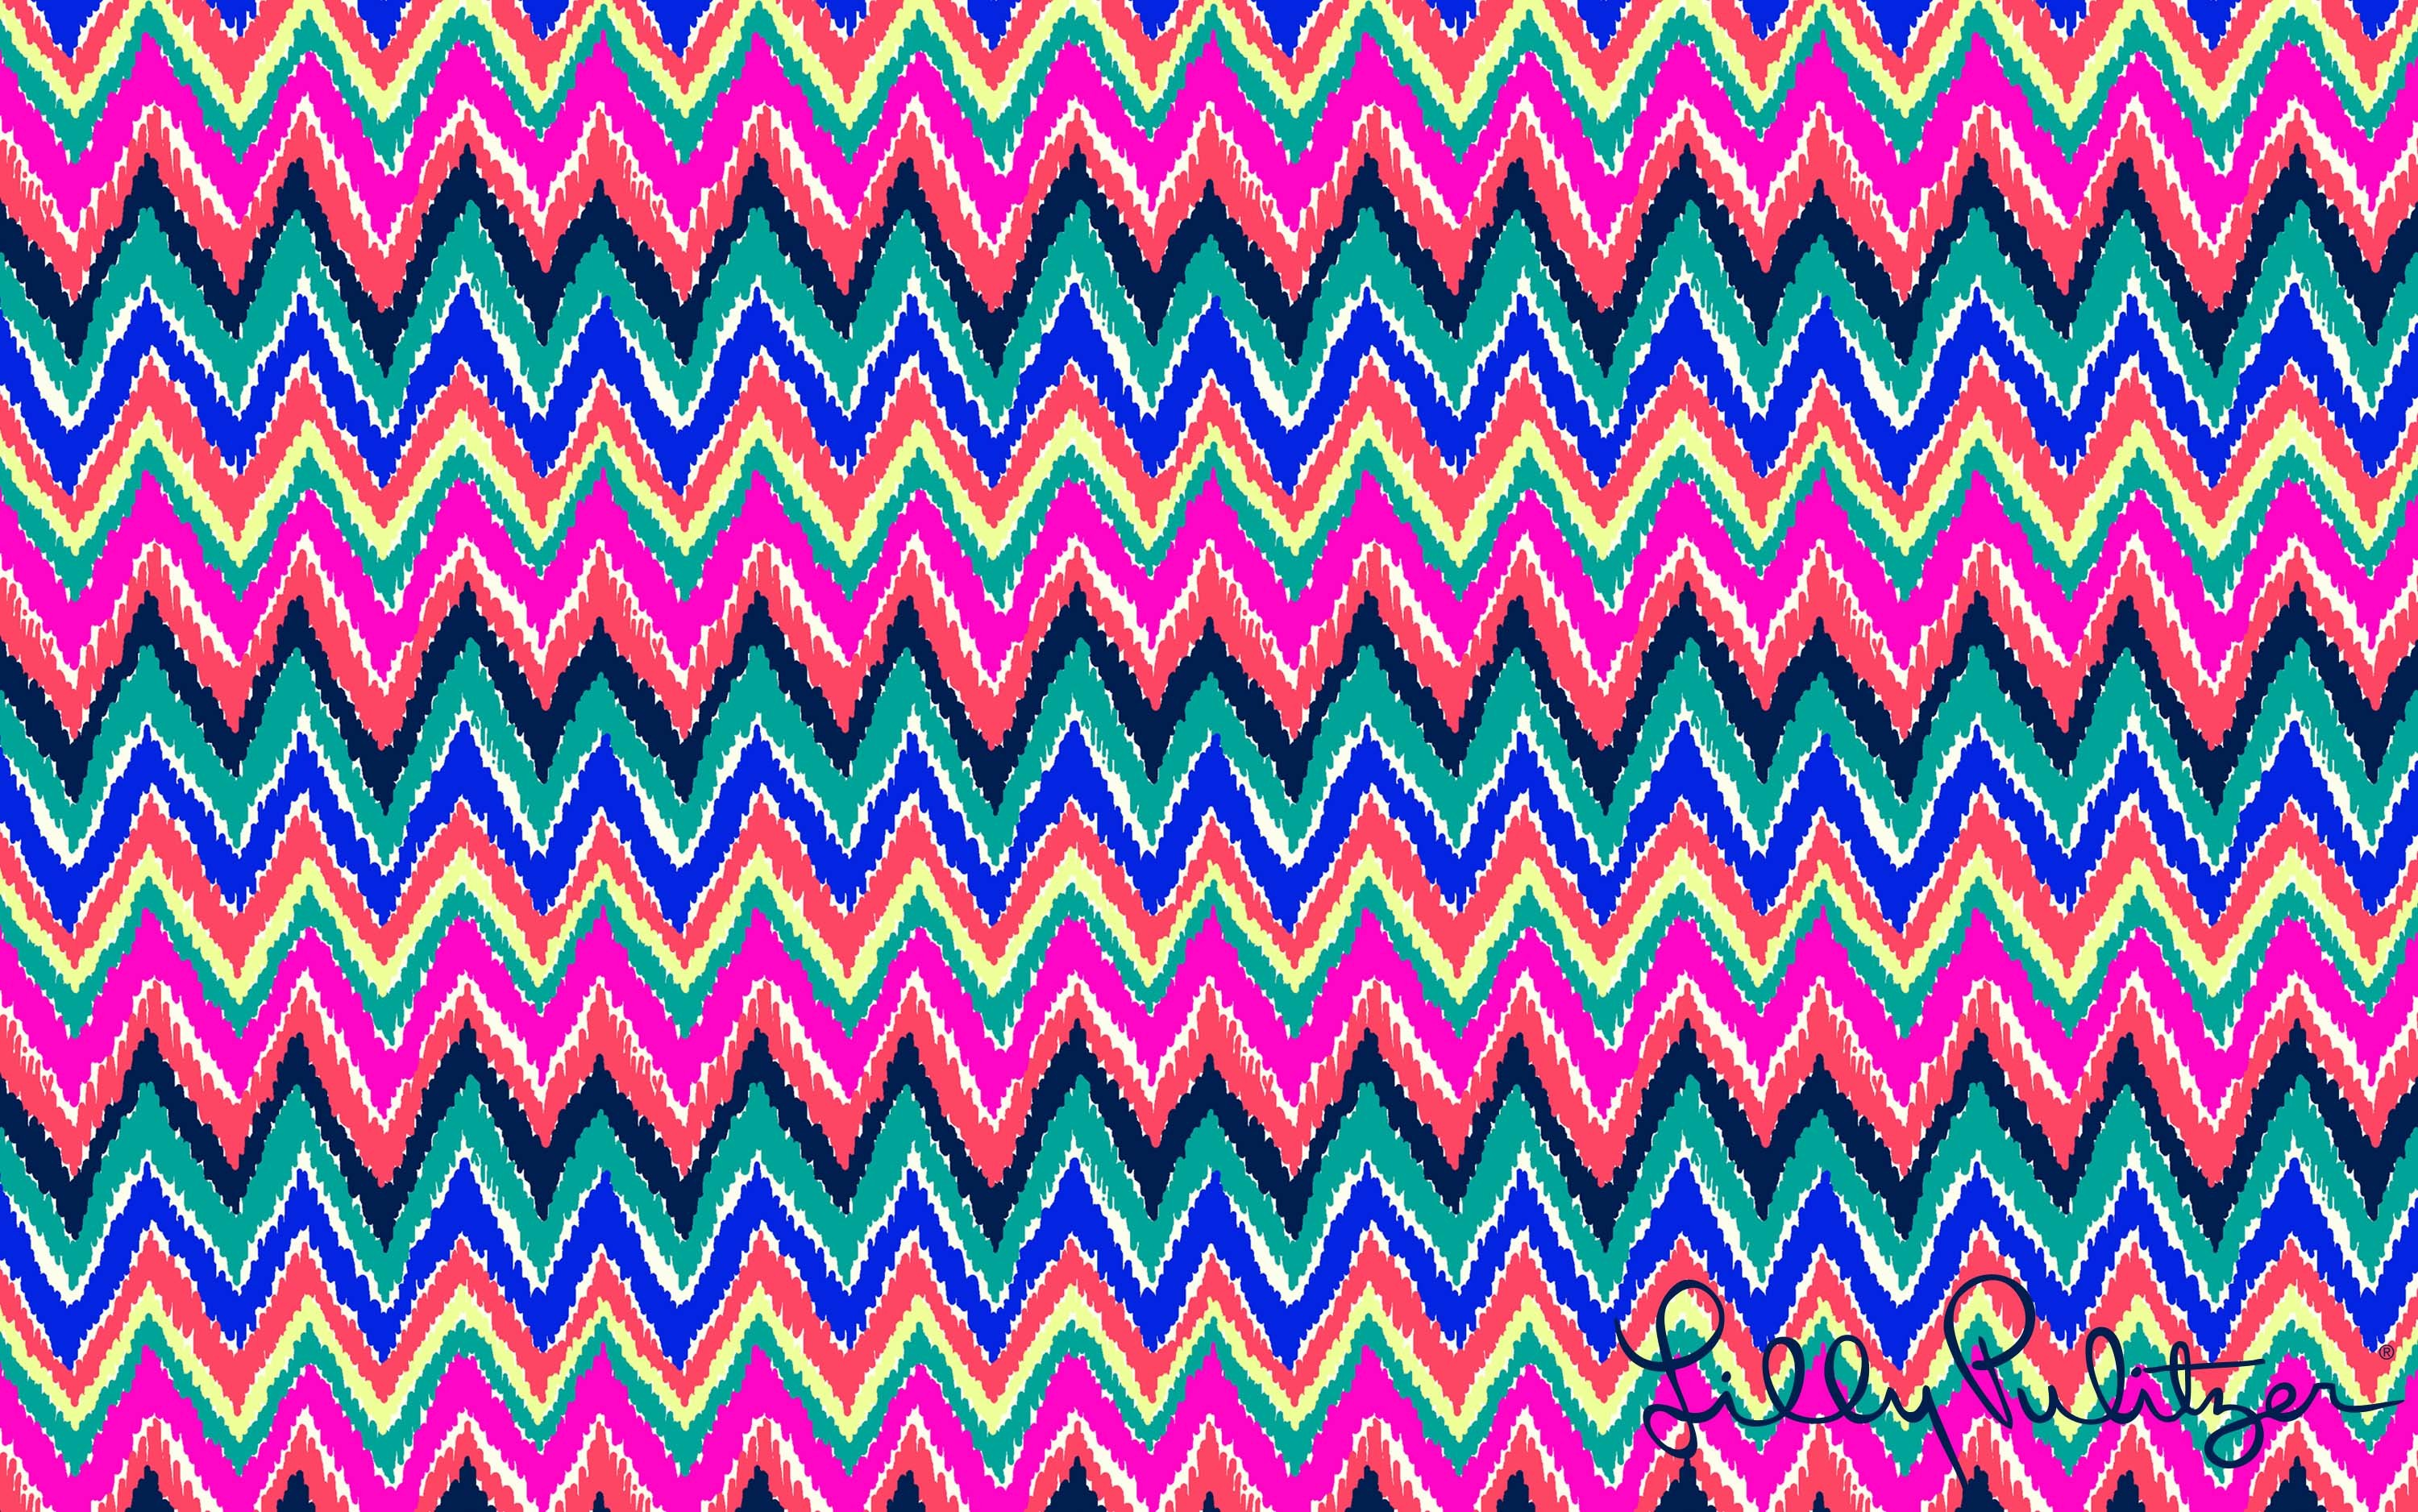 3000x1876 lilly pulitzer anchor wallpaper hd with high resolution 3000x1876 px 868 95 kb abstract iphone backgrounds with